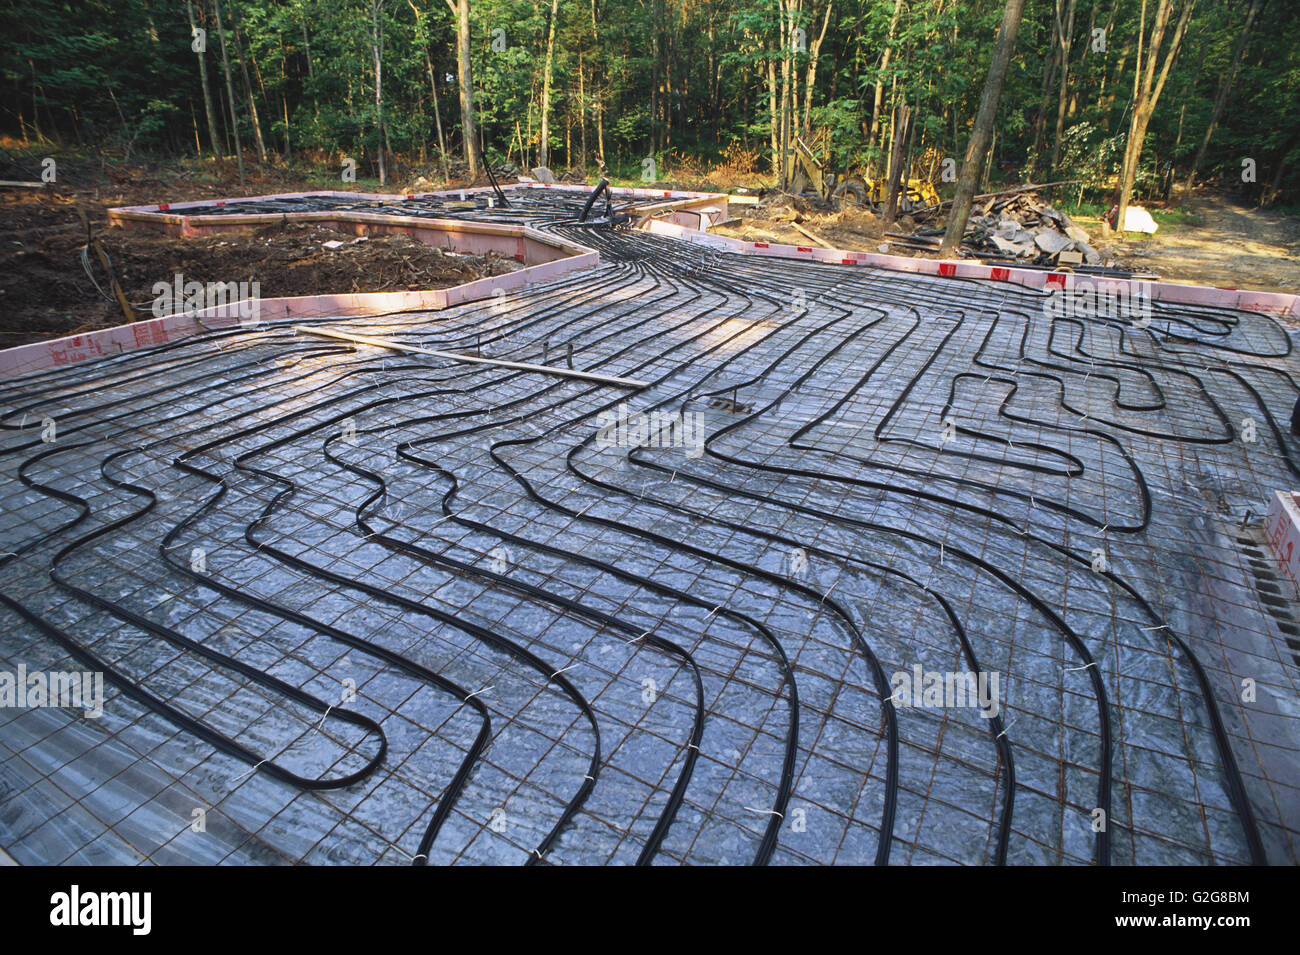 Radiant heat pipes before concrete pour - Stock Image